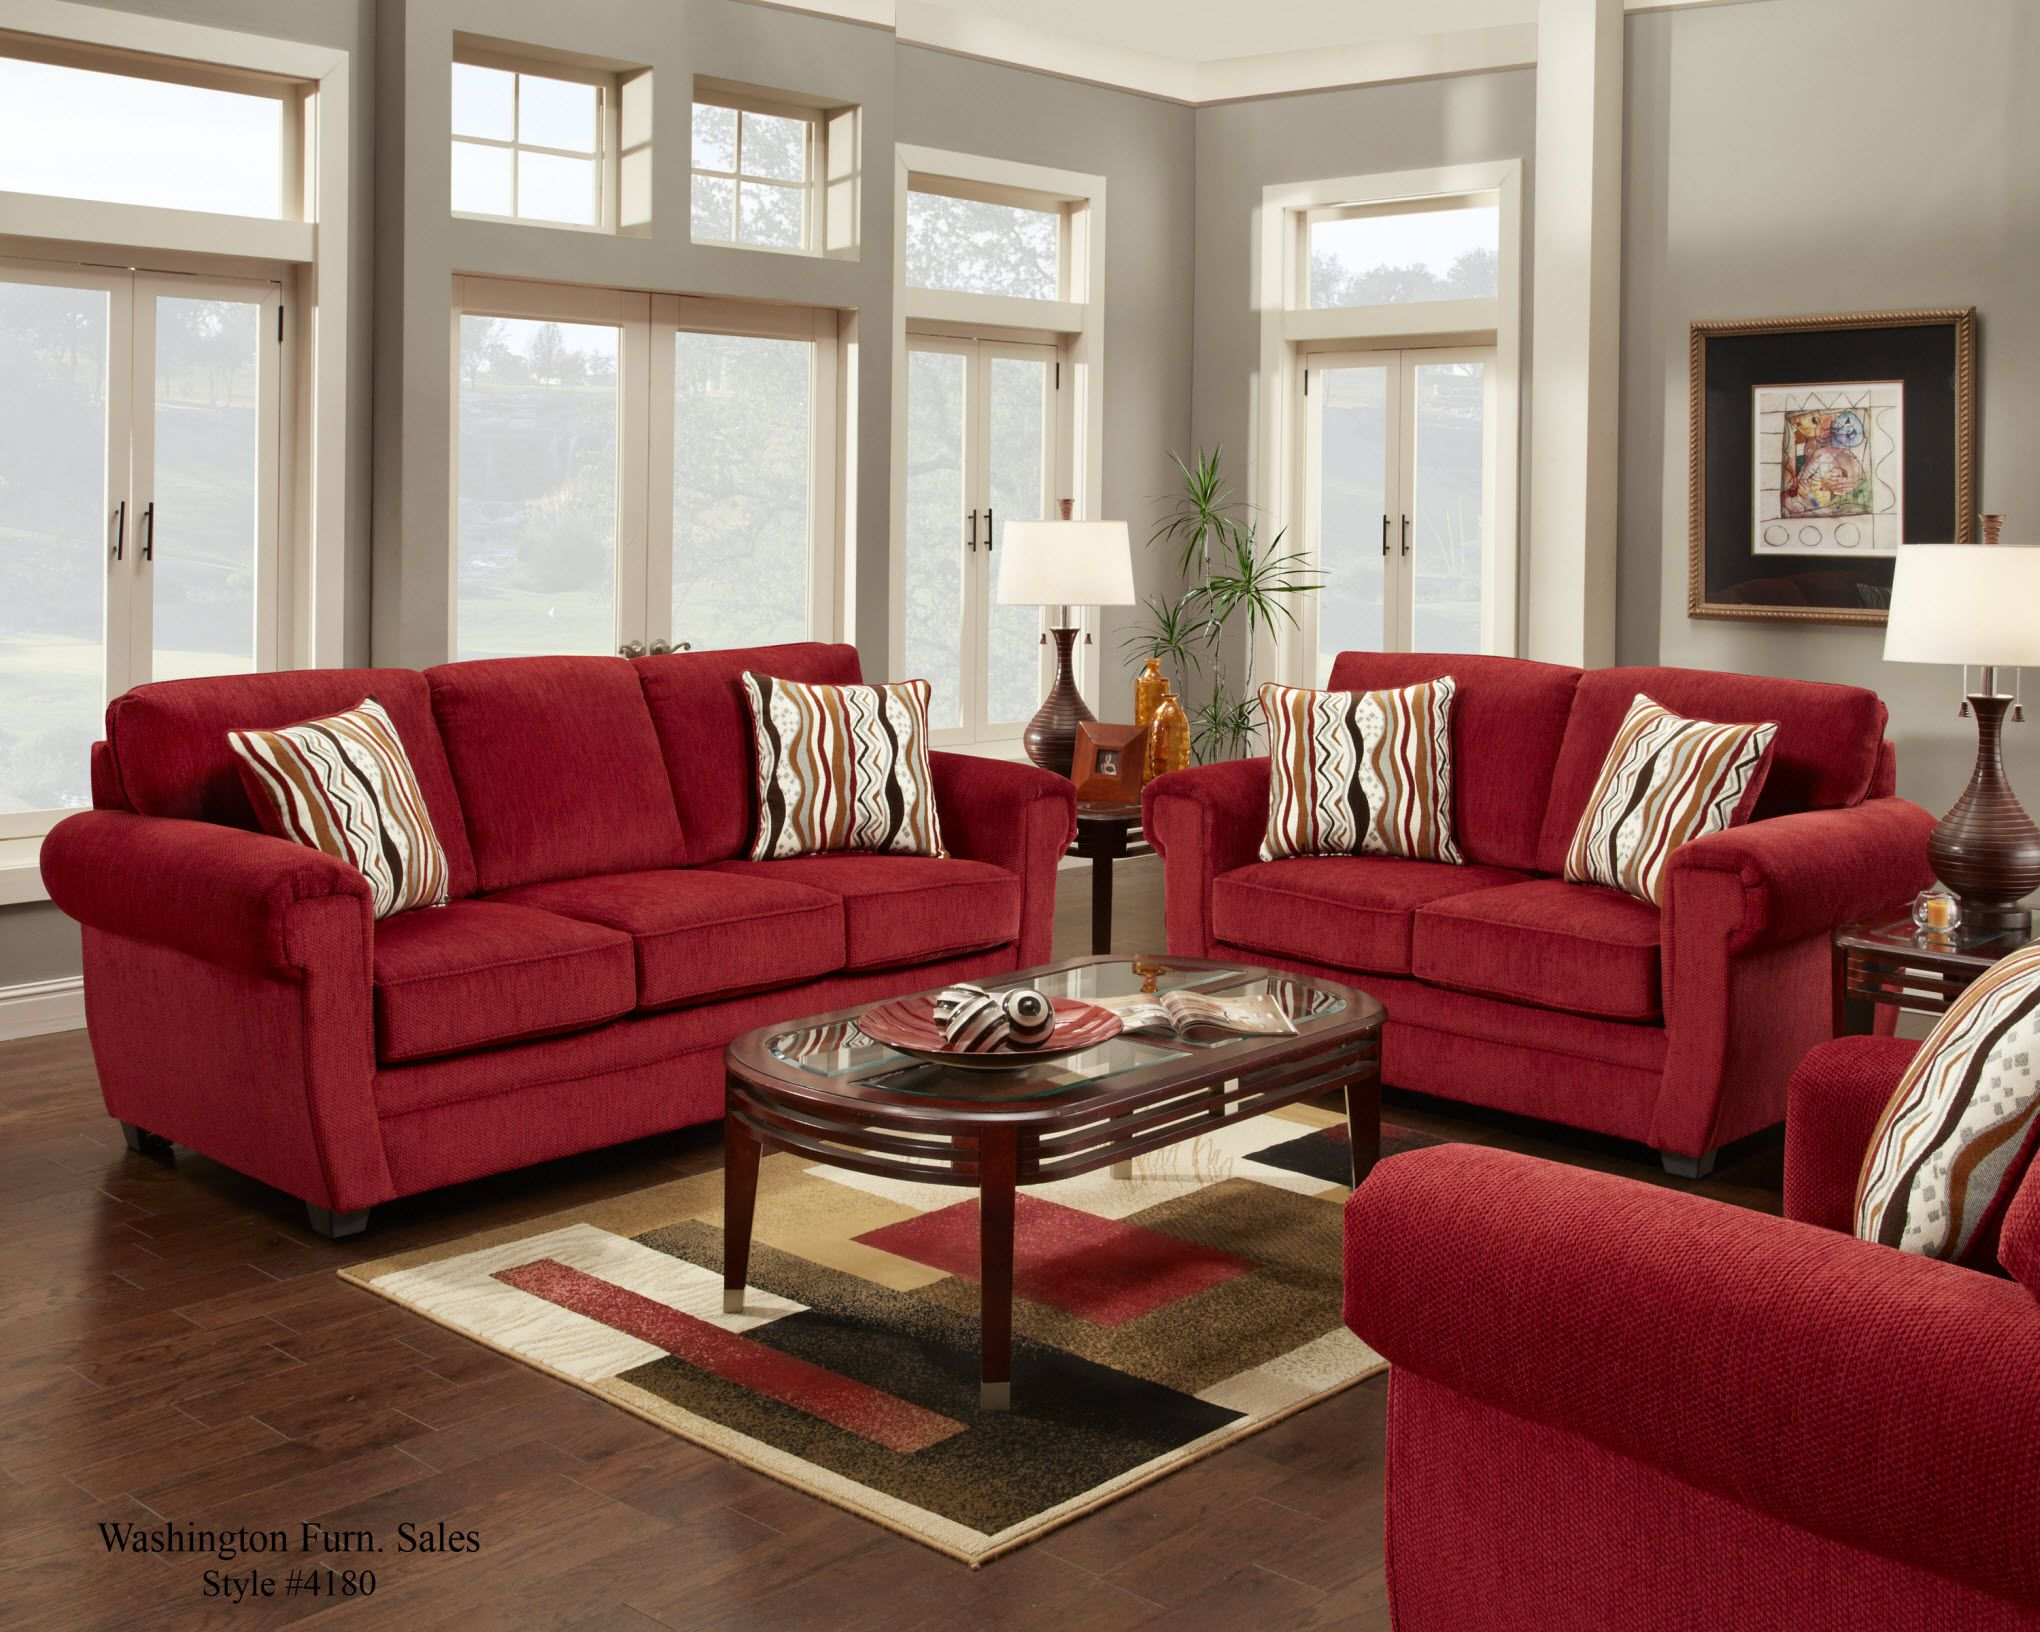 wall color red couch decorating ideas red sofa design in. Black Bedroom Furniture Sets. Home Design Ideas